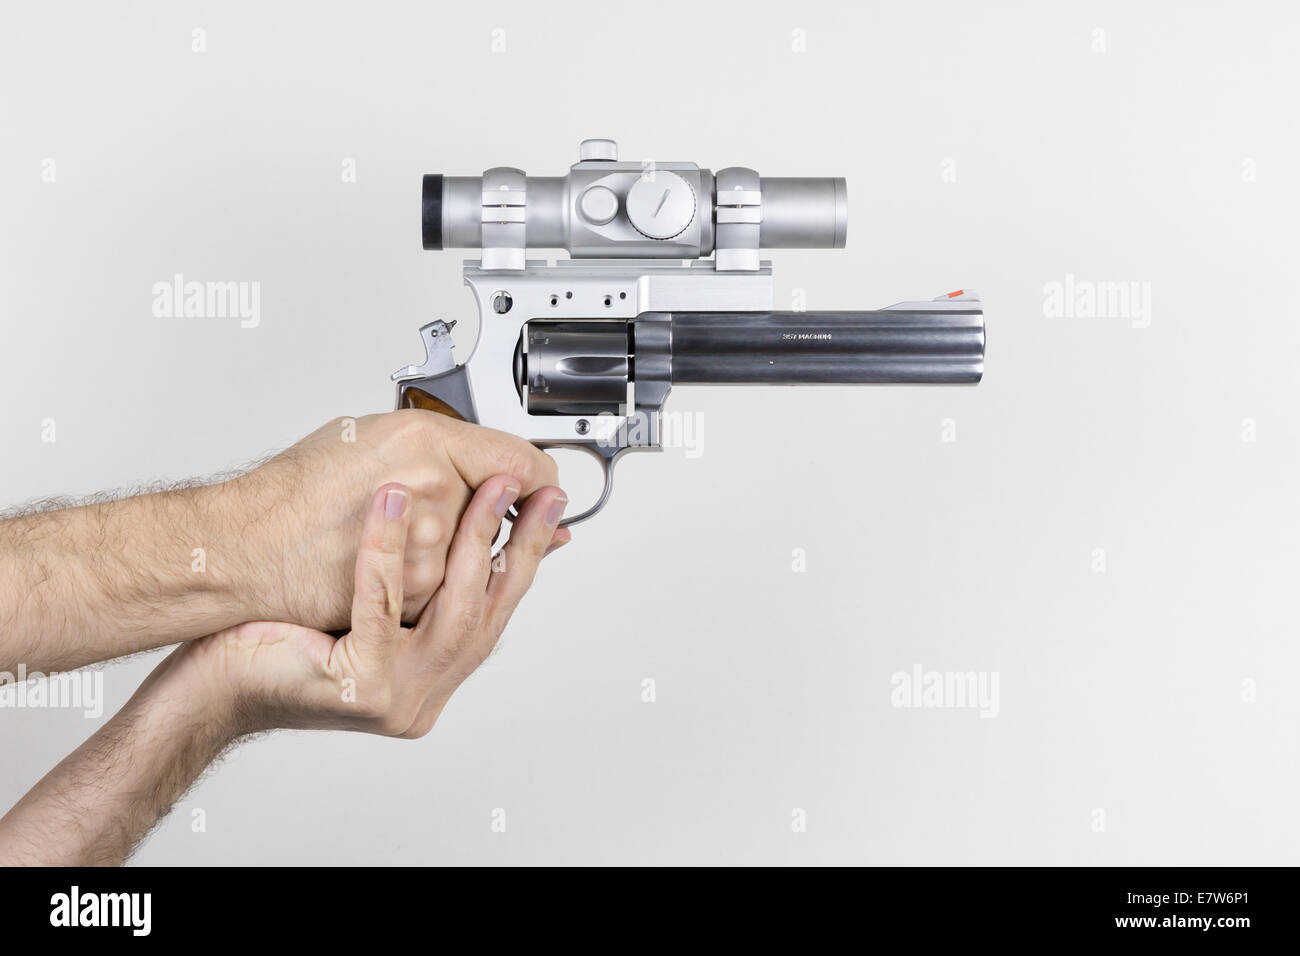 Shooter holds .357 Magnum revolver with dot sight - Stock Image